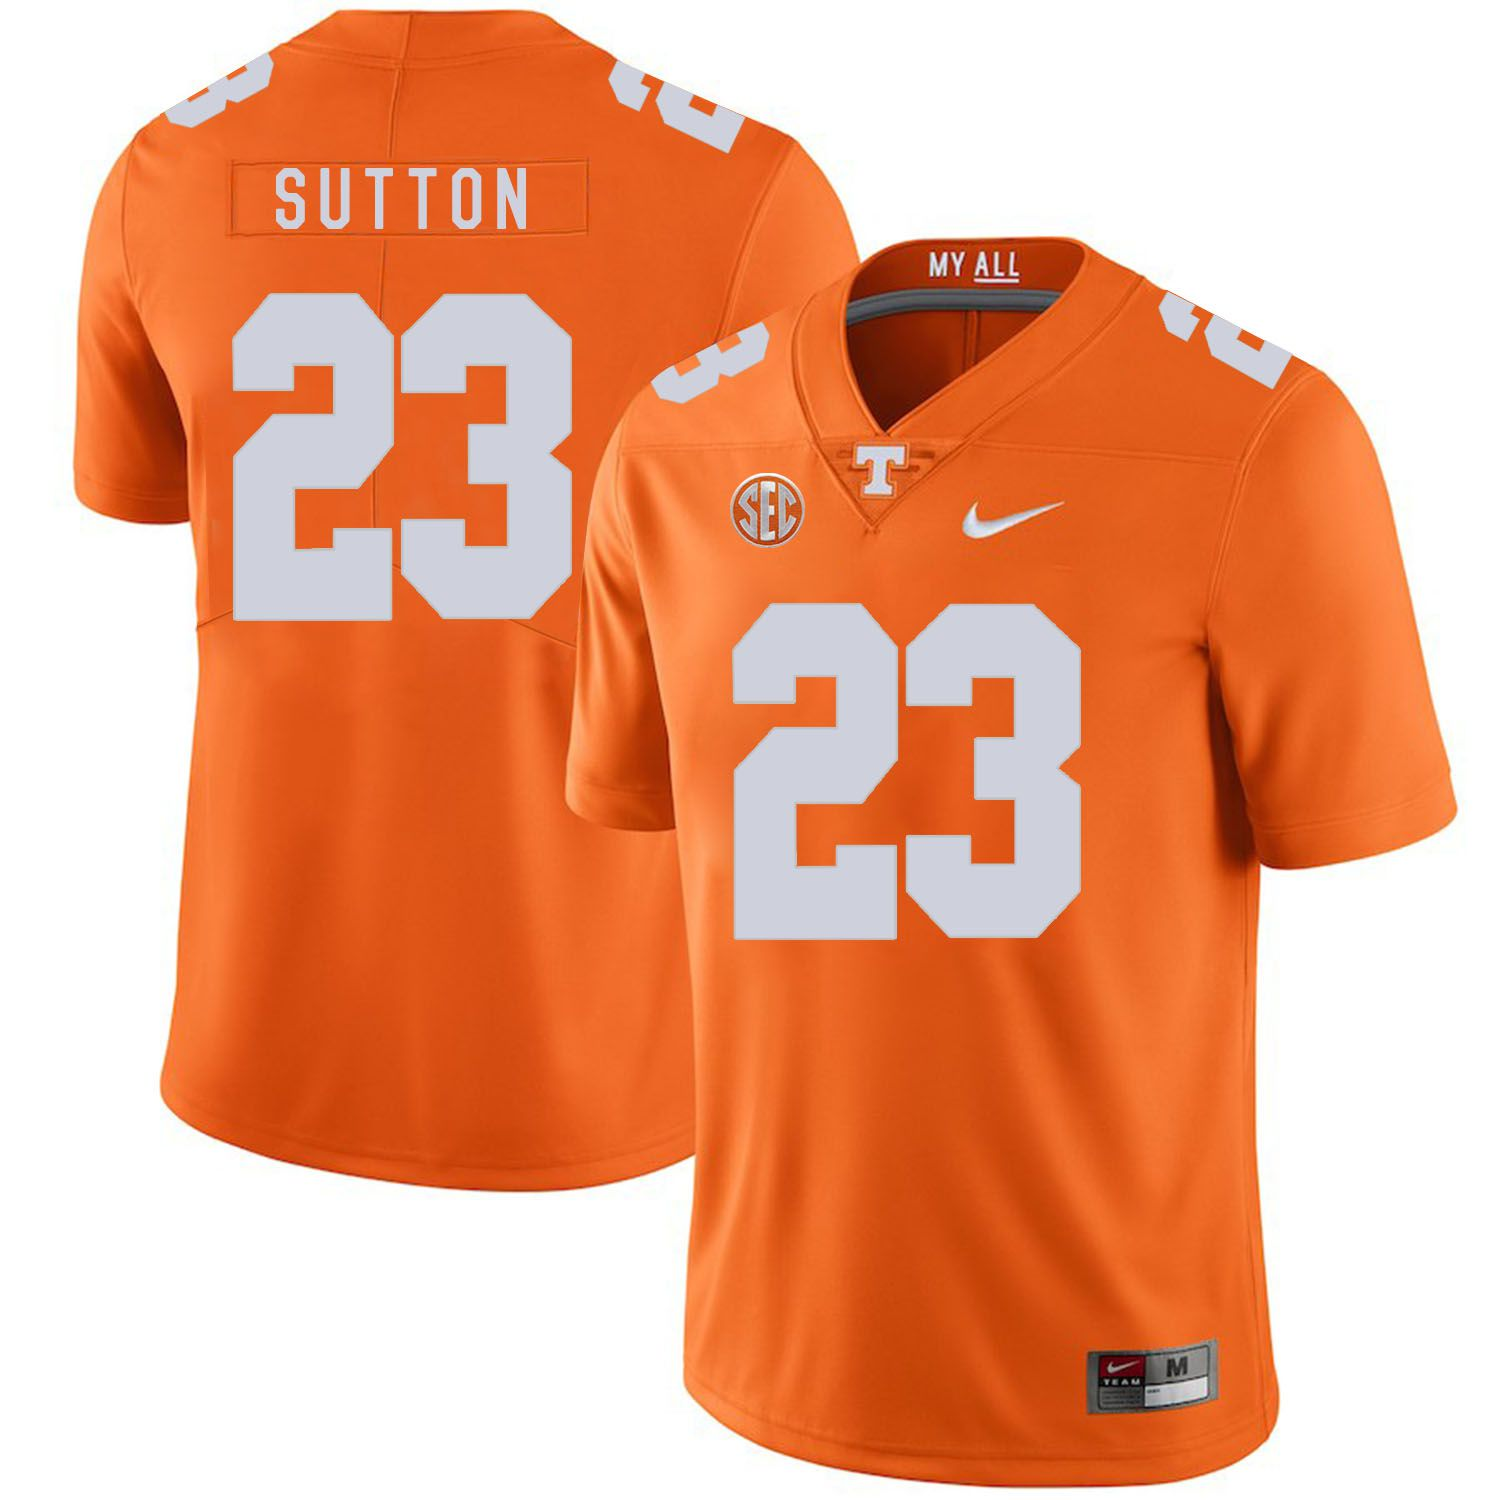 Men Tennessee Volunteers 23 Sutton Orange Customized NCAA Jerseys